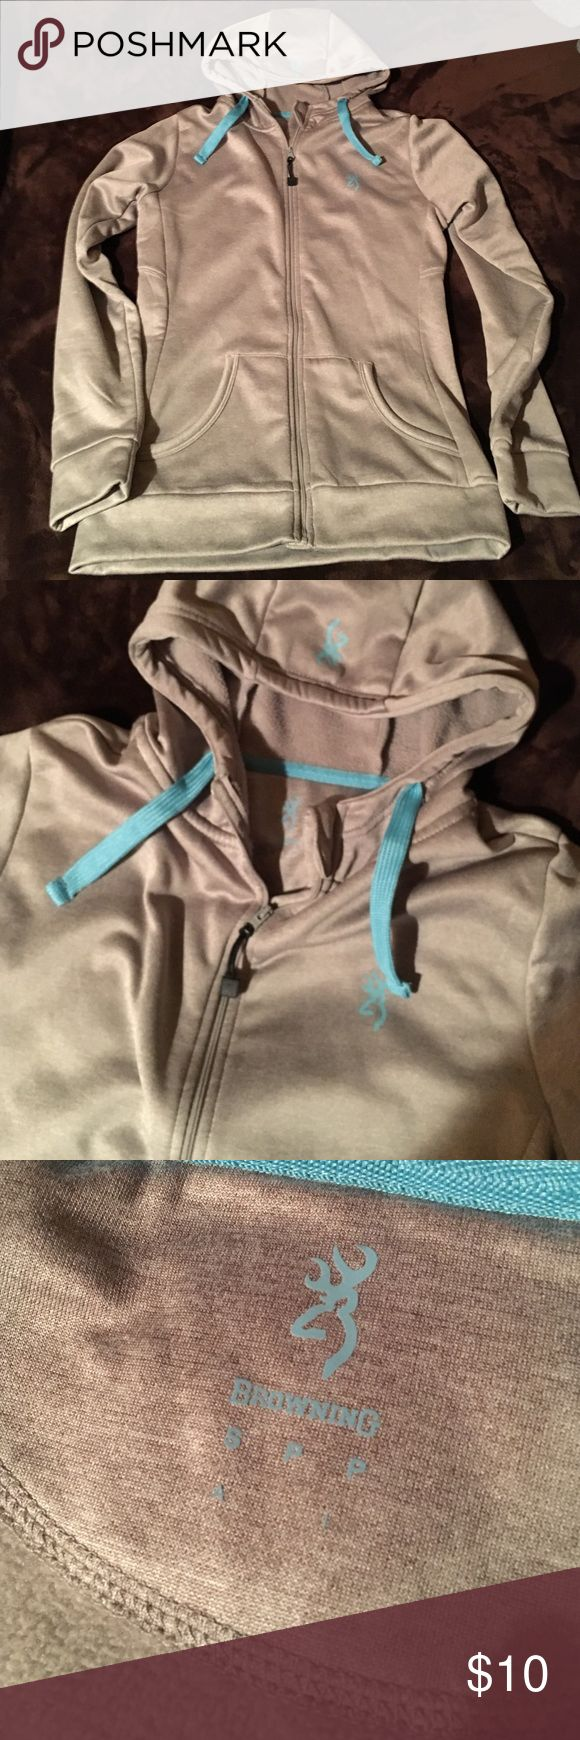 Women's browning zip up New without tags. Grey with blue accents. browning Tops Sweatshirts & Hoodies